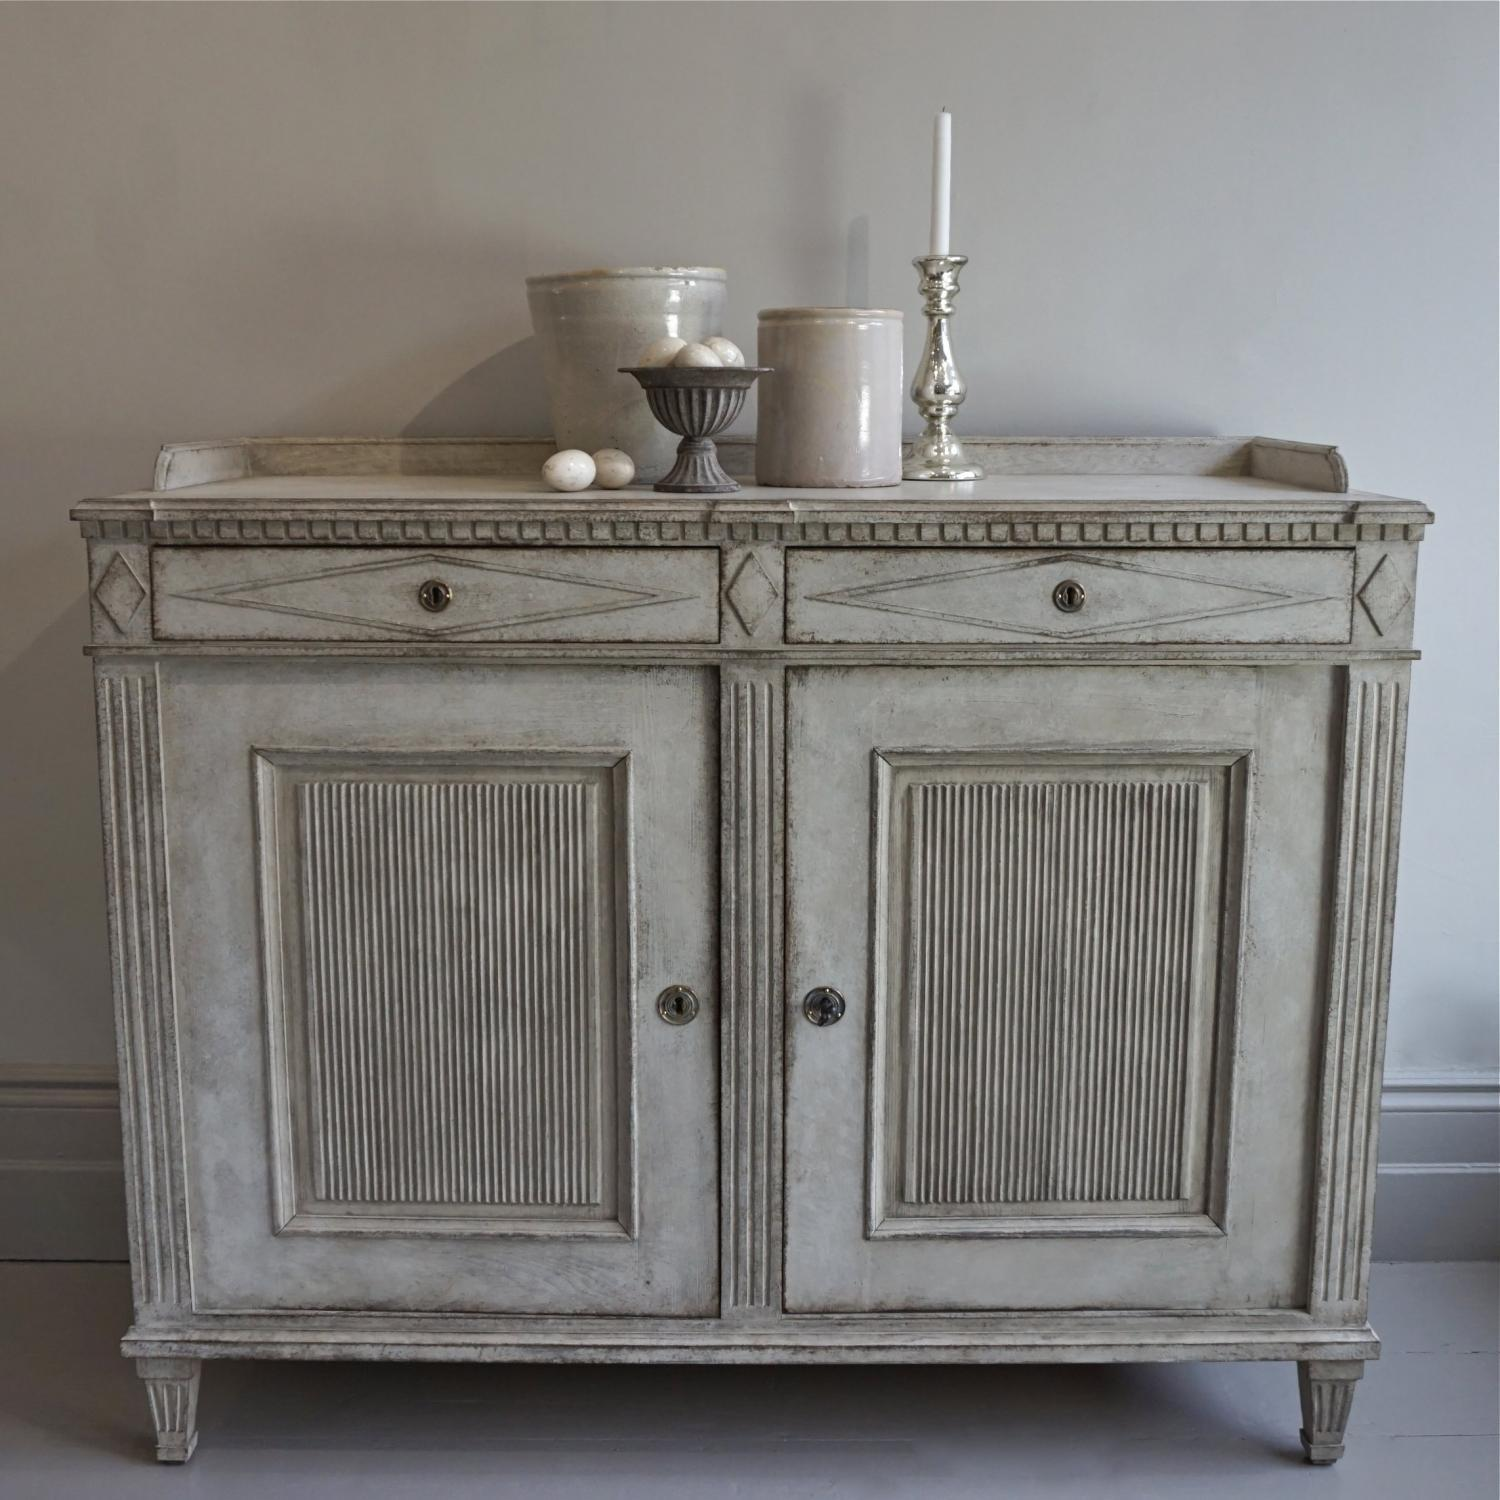 EXCEPTIONAL SWEDISH GUSTAVIAN STYLE SIDEBOARD